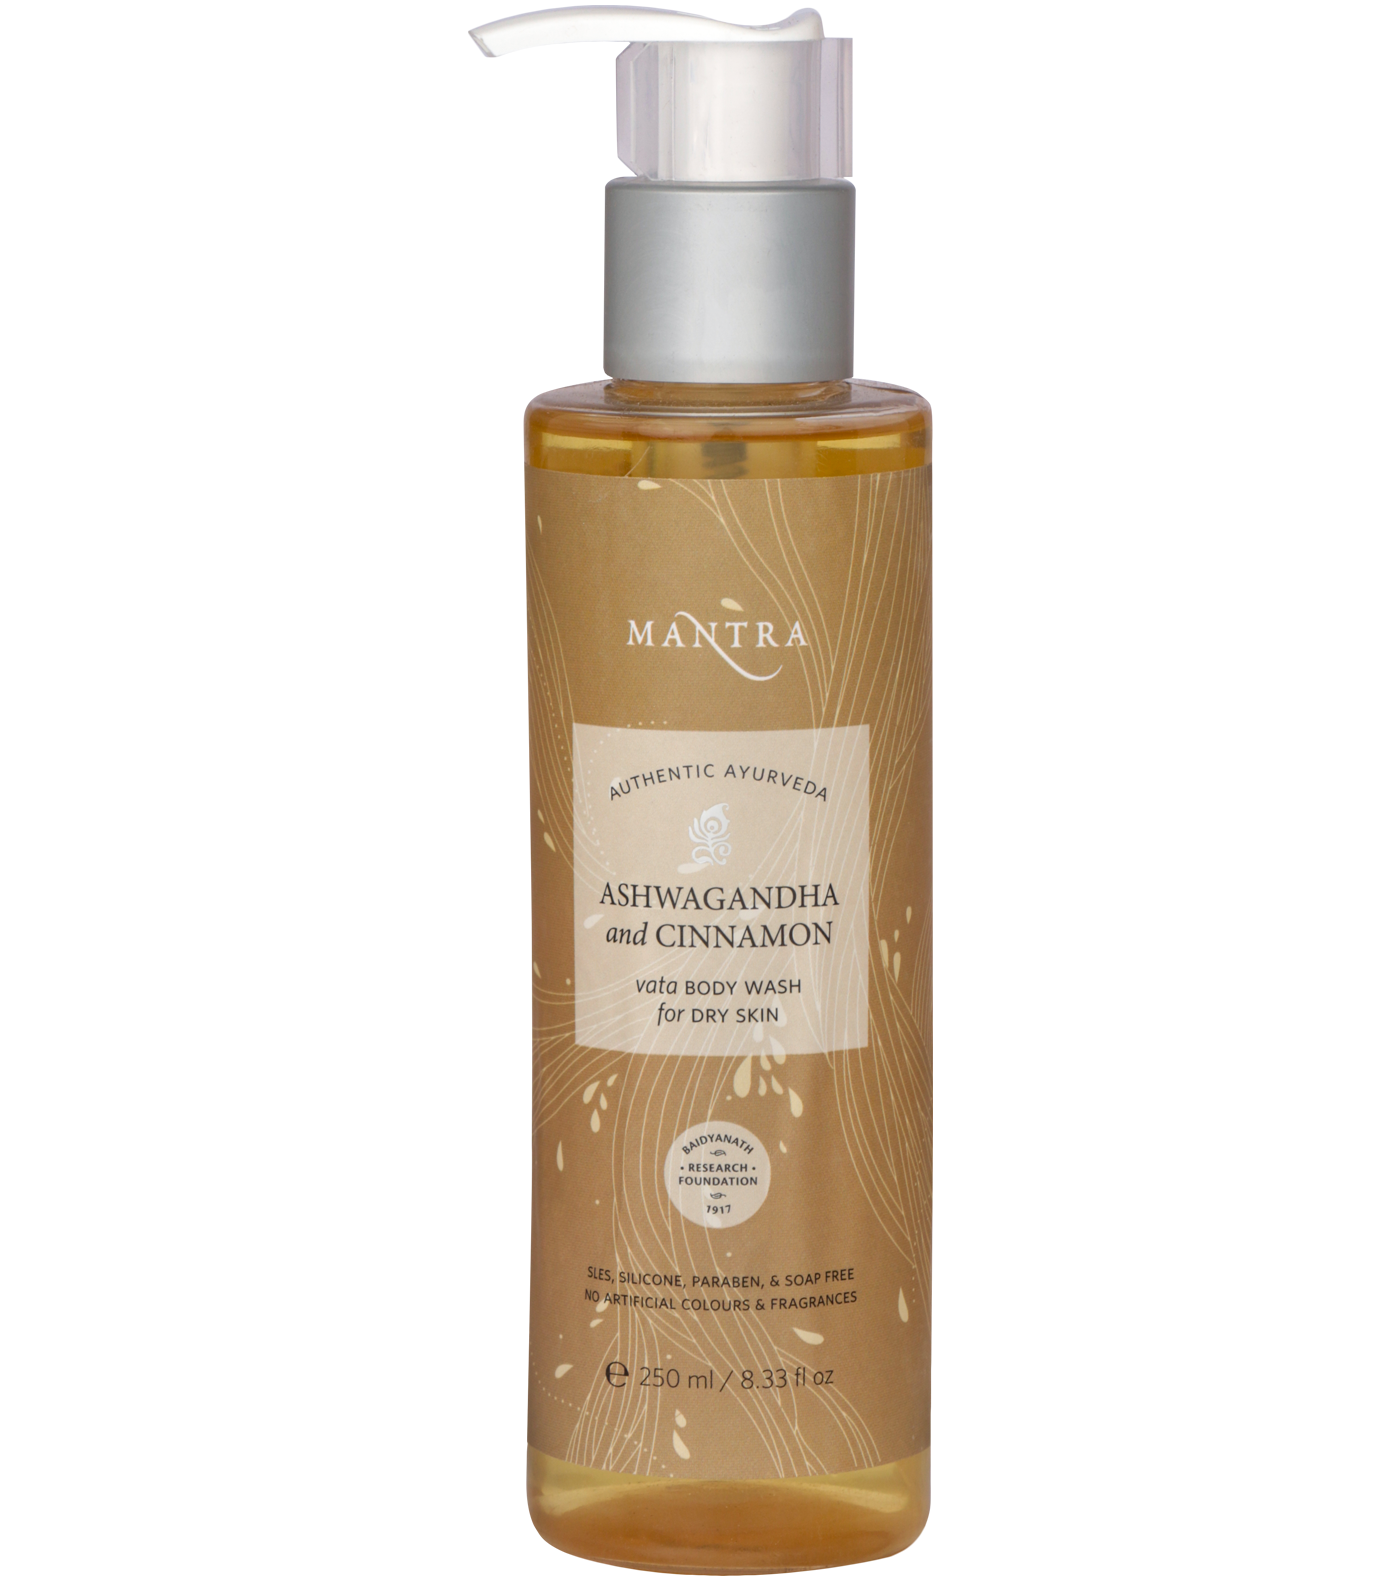 Ashwagandha and Cinnamon Vata Body Wash for Dry Skin